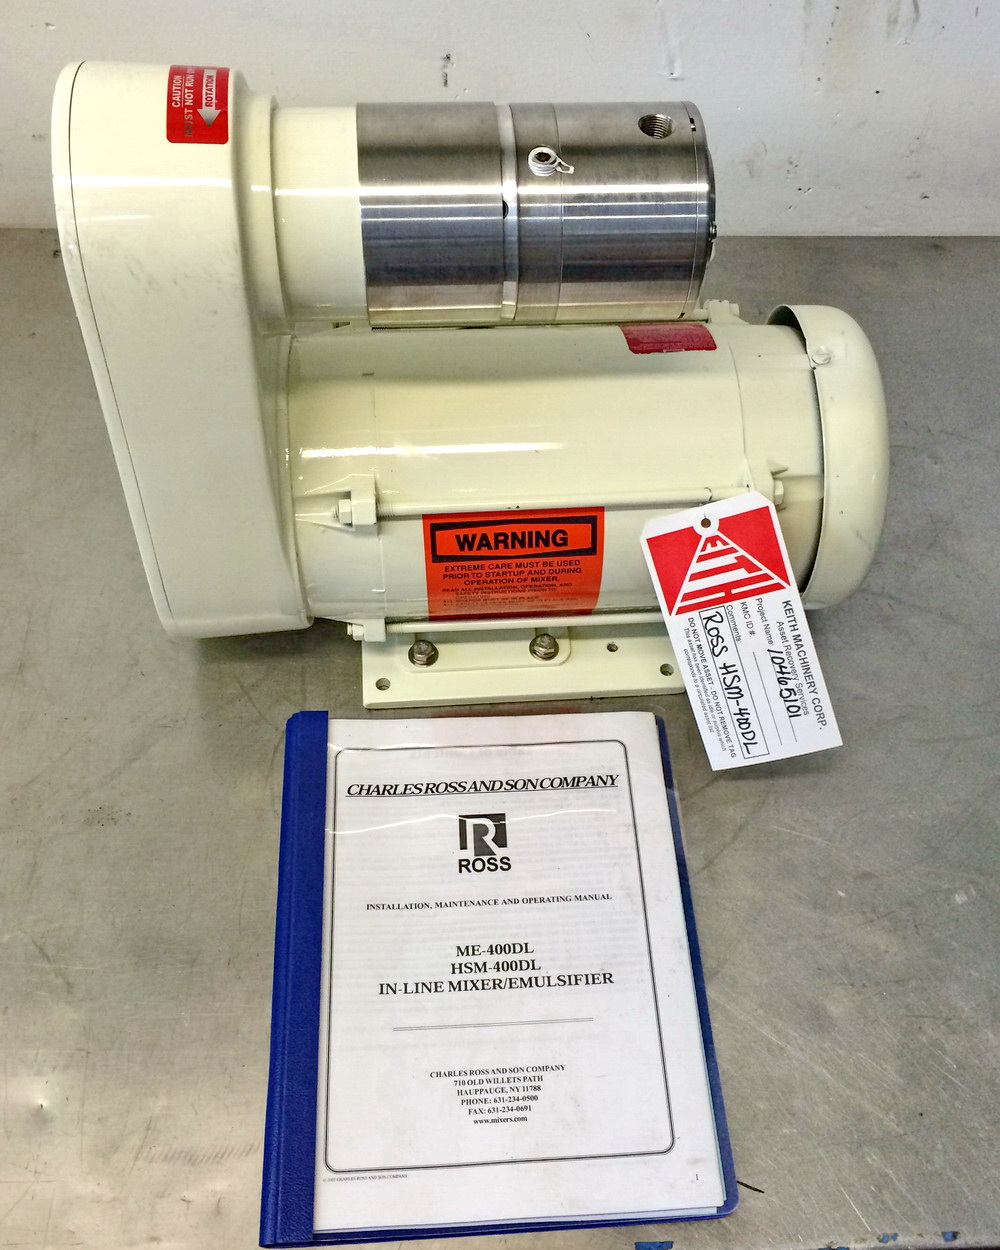 New/Unused Ross Lab Size Inline Rotor/Stator High Shear Mixer, Model HSM-400DL S/N 105004